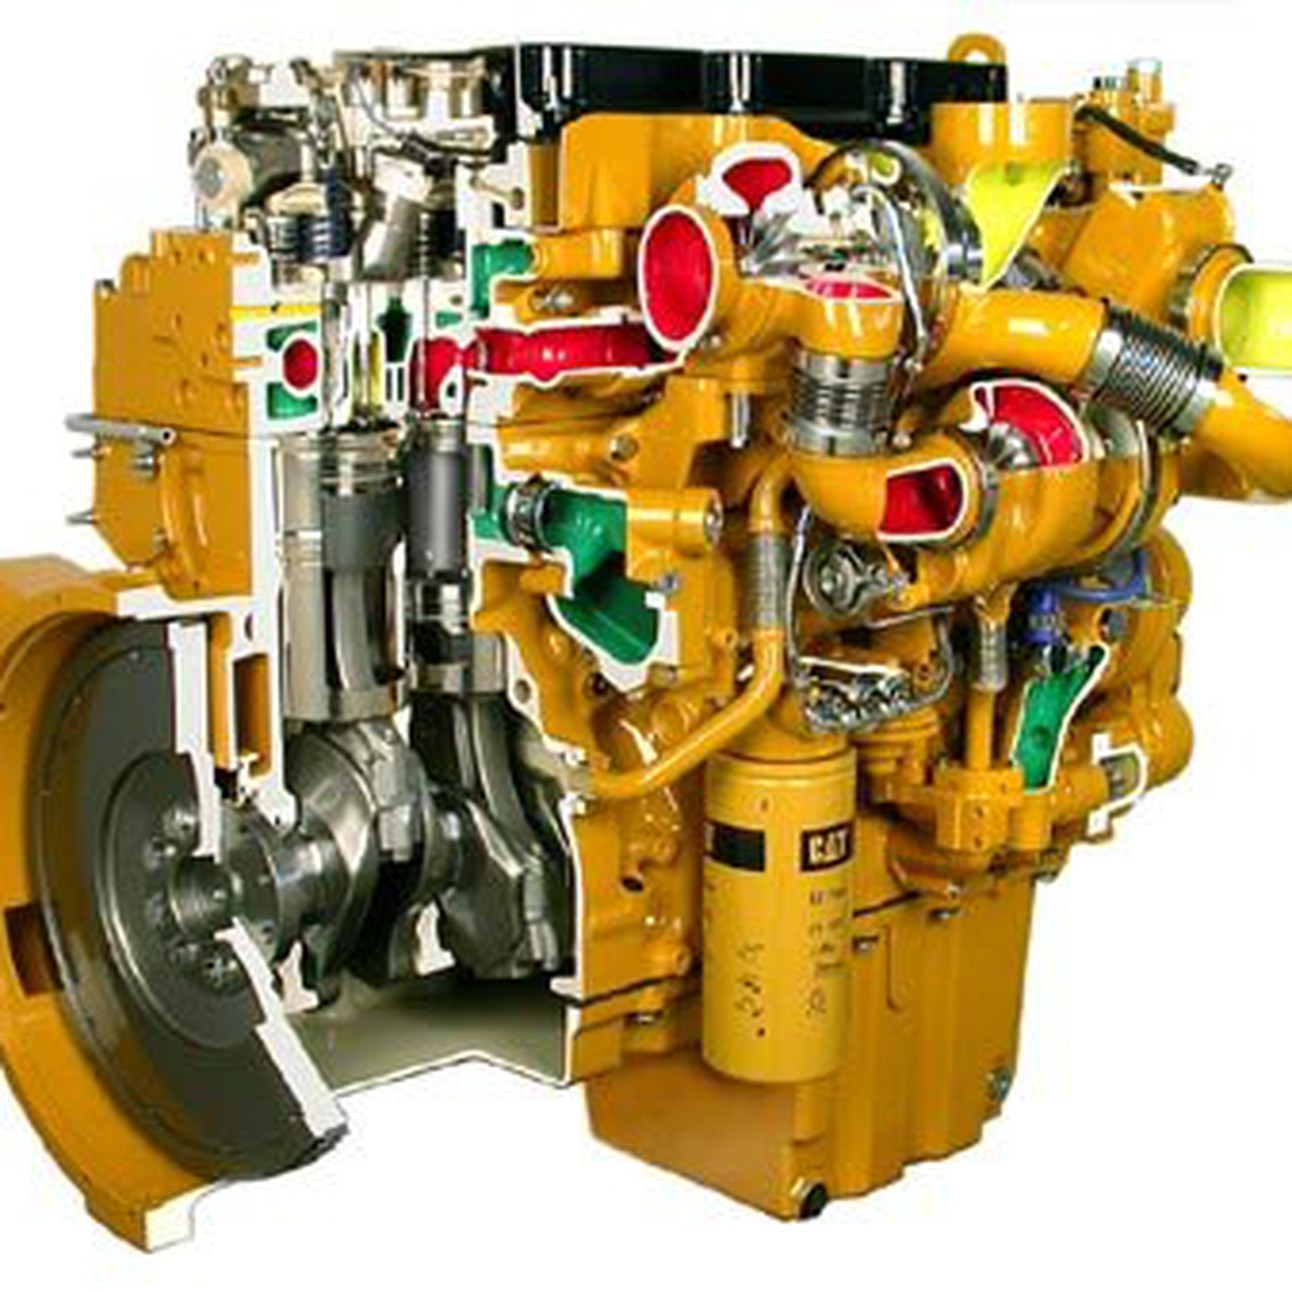 Caterpillar 3406C Diesel Truck Engine Disassembly and Assembly